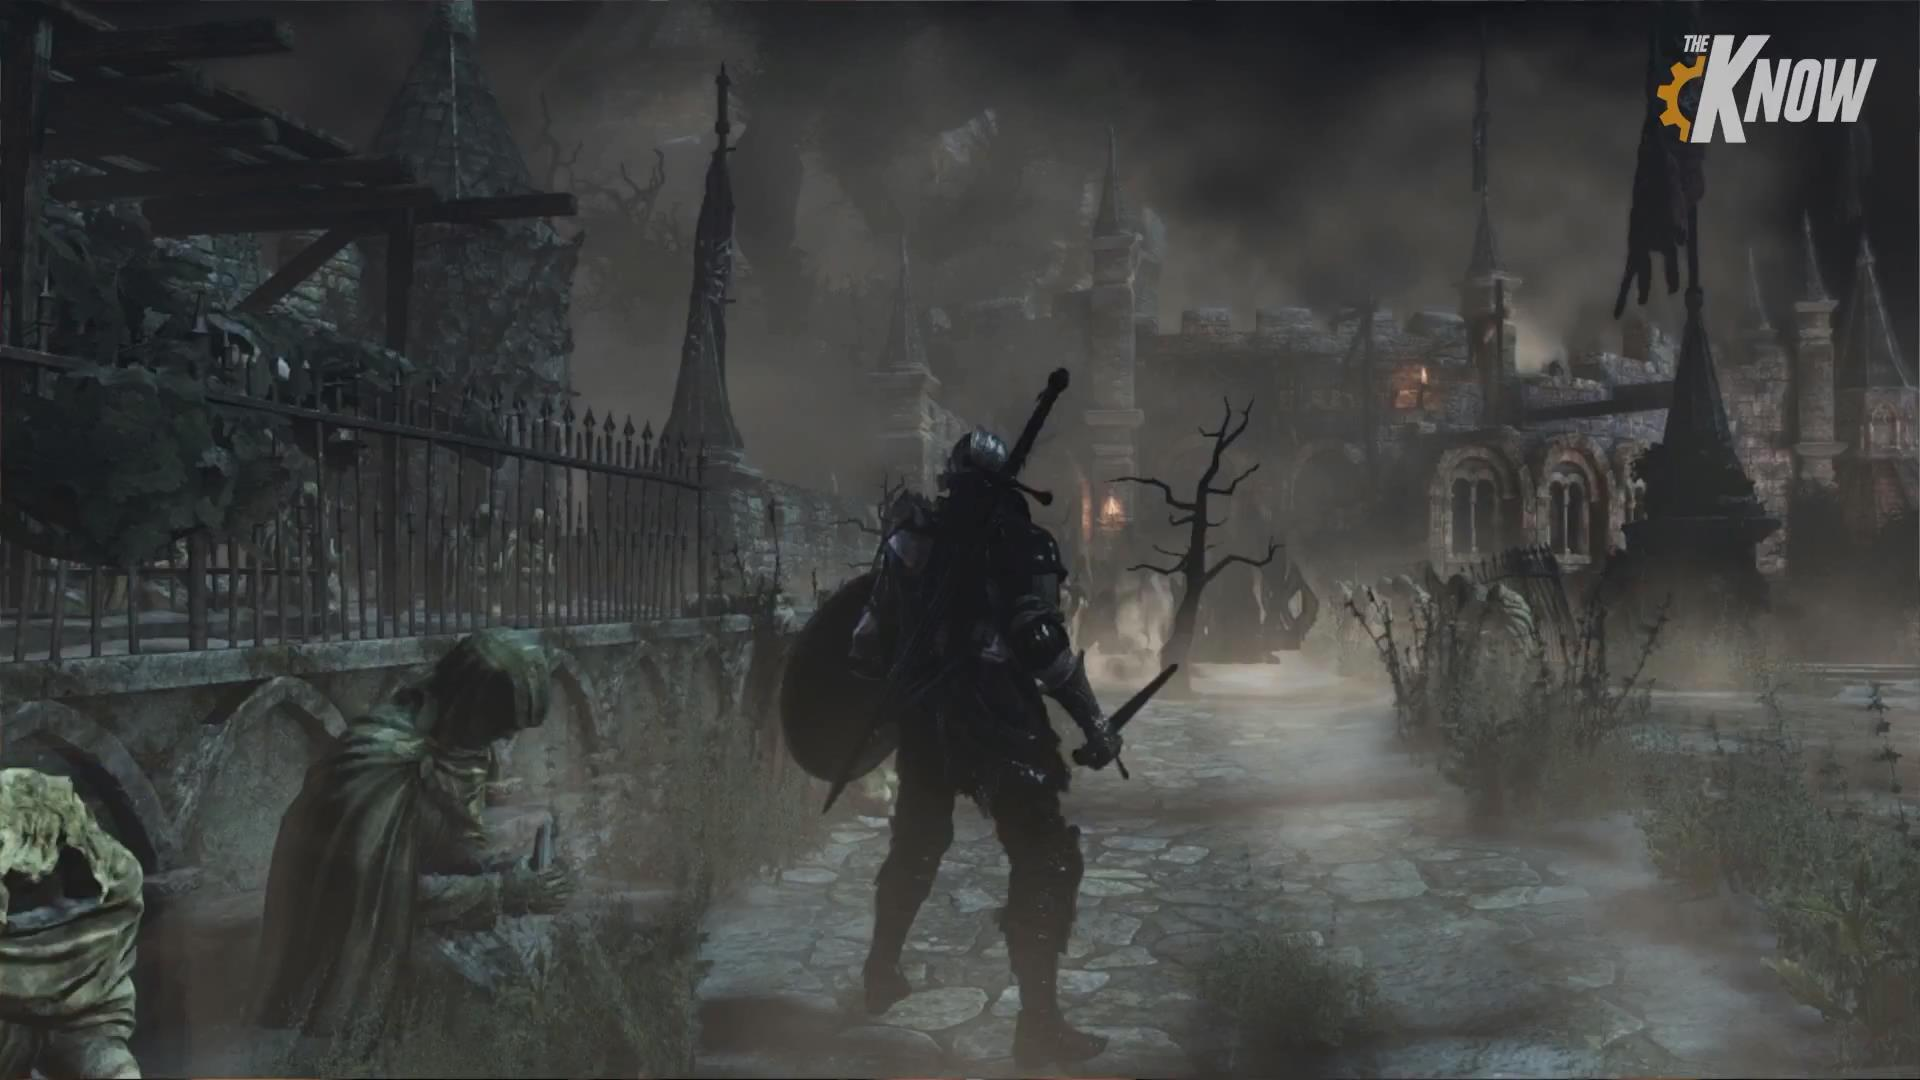 Dark Souls 3 EXCLUSIVE LEAKS! - The Know.mp4_snapshot_02.24_[2015.06.05_23.23.42]